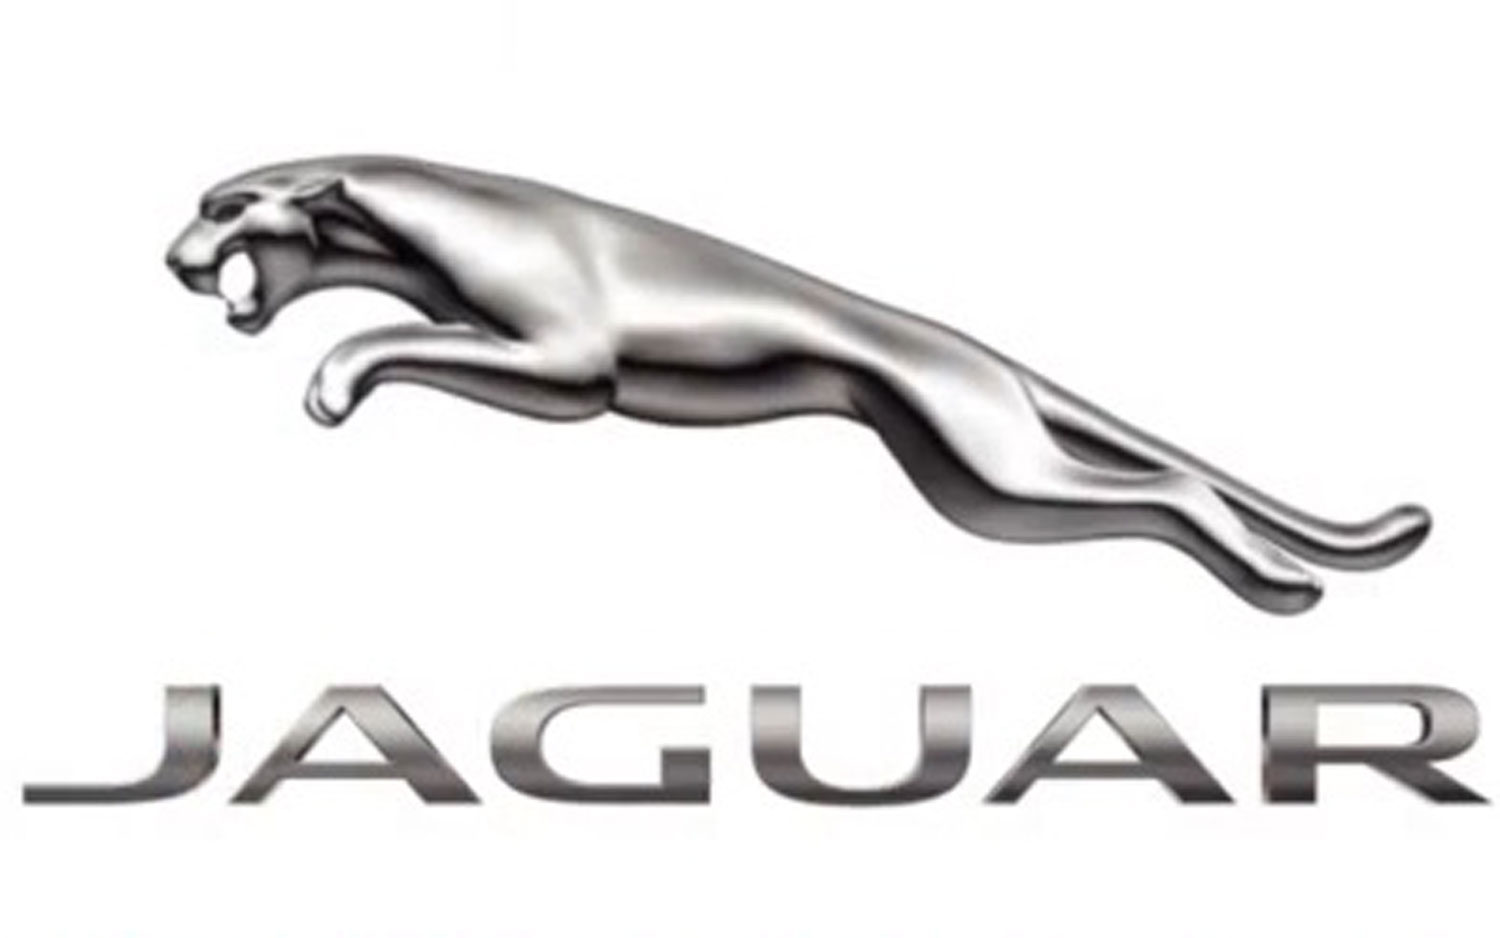 jaguar logo vector - photo #3